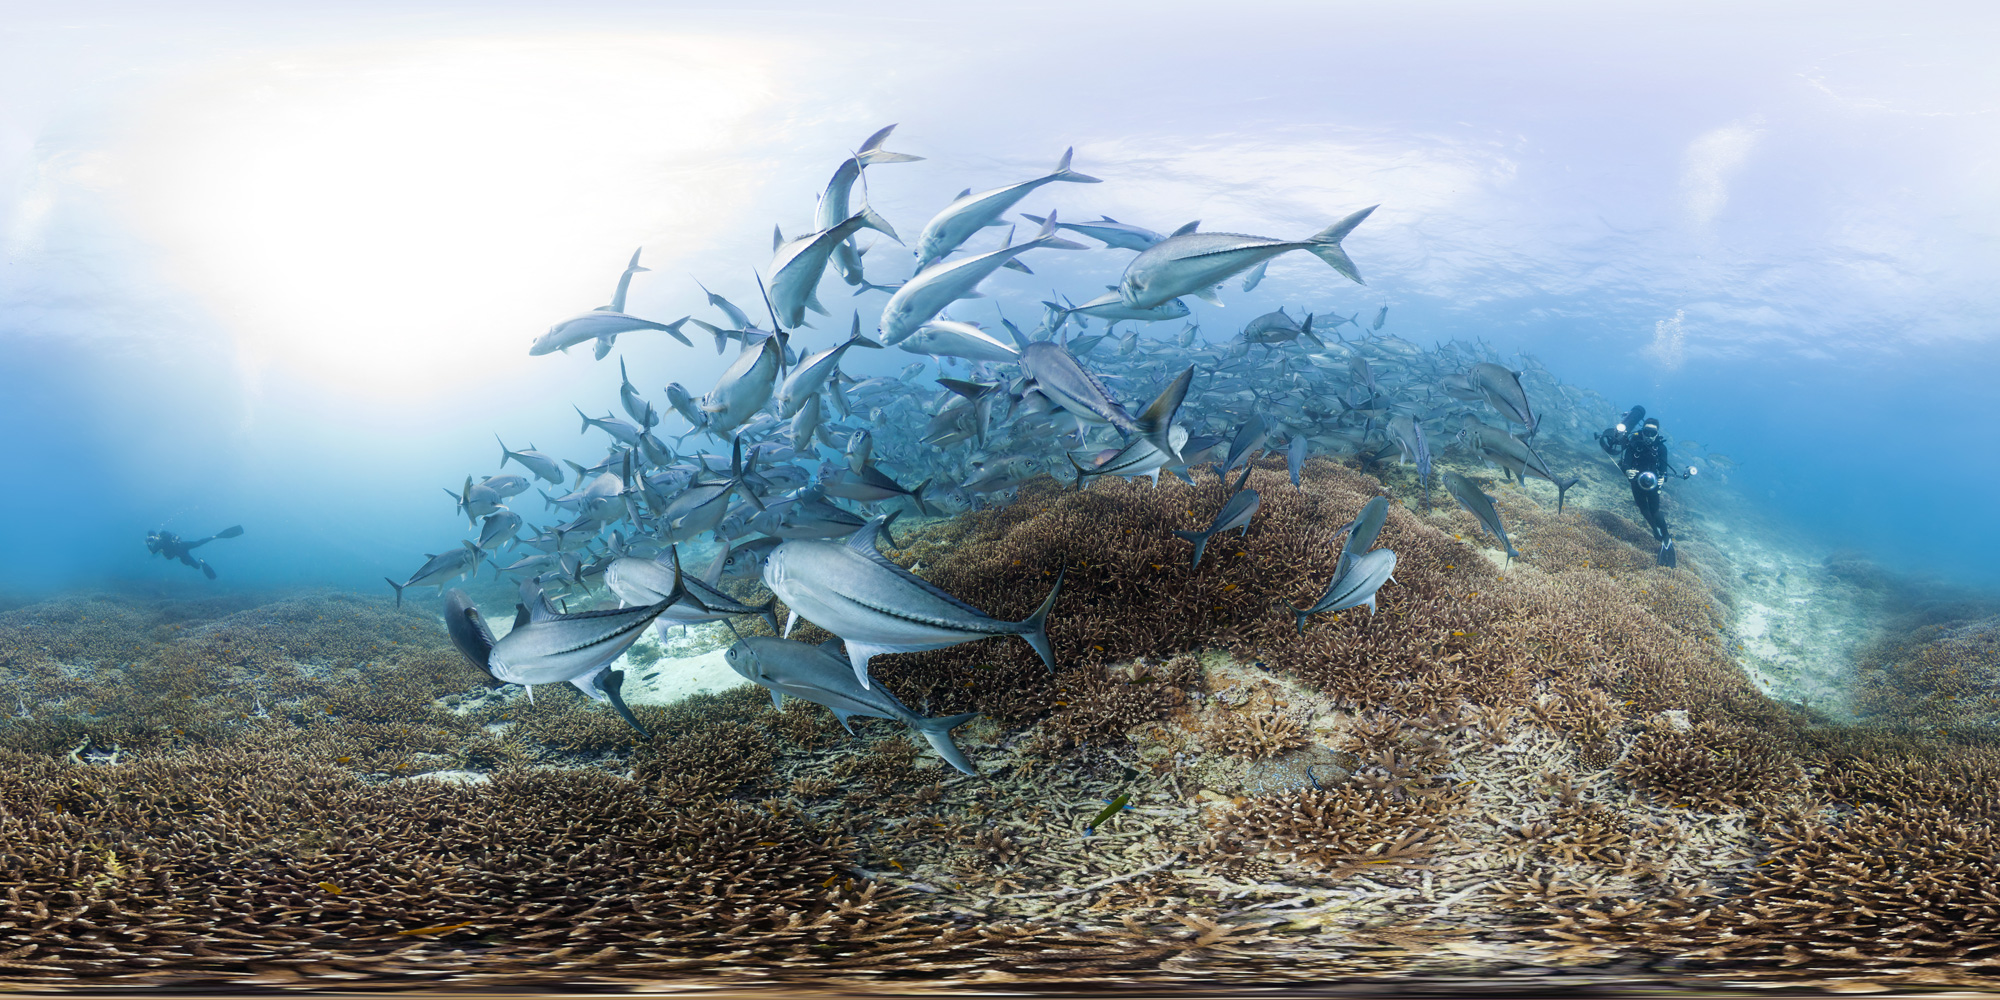 Trevally at Lady Elliot Island   Photo By The Ocean Agency XL Catlin Seaview Survey - Christophe Bailhache